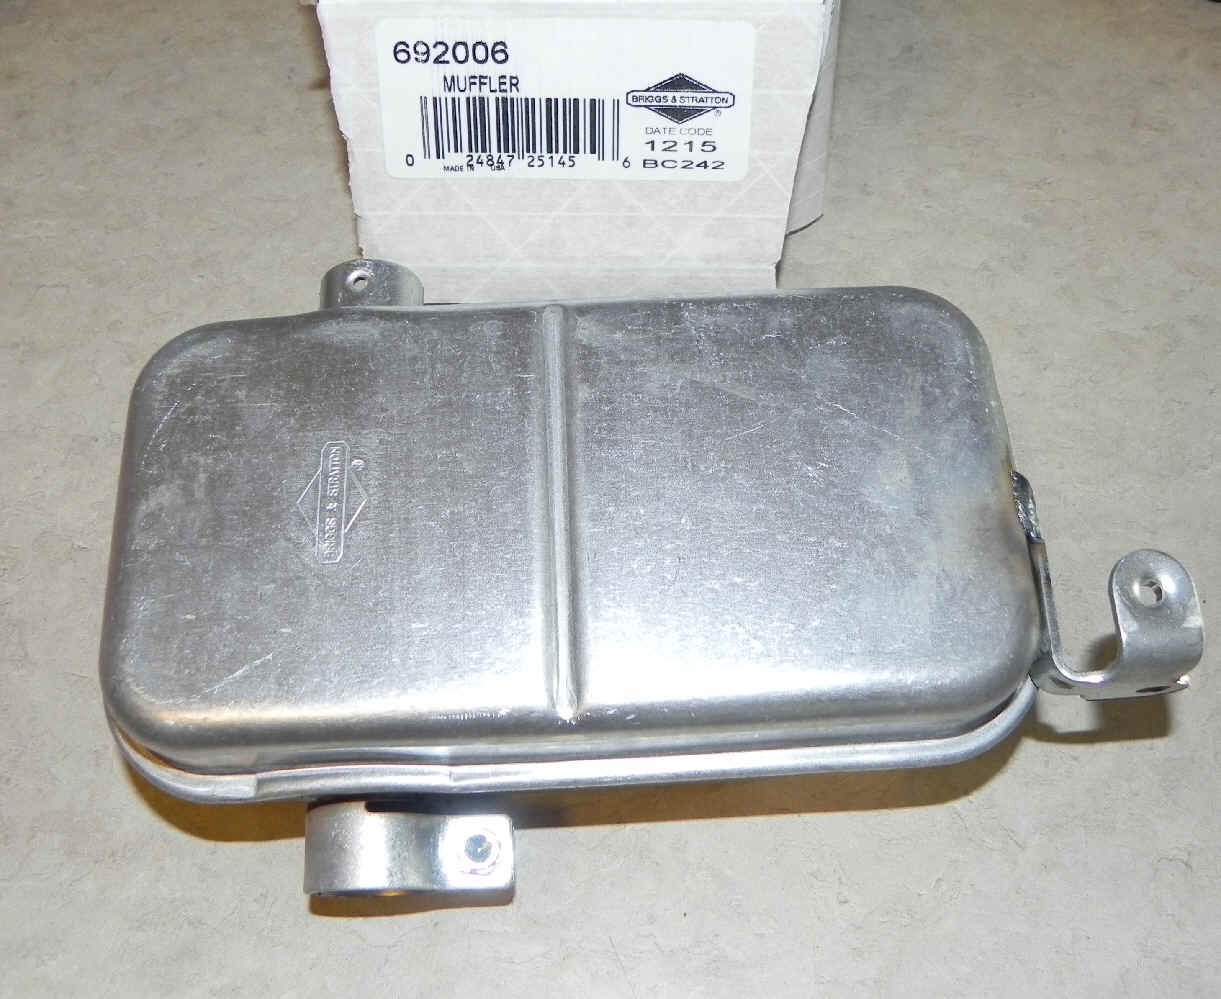 Briggs Stratton Mufflers For Small Engines And 92900 Series Parts List Diagram Muffler Part No 692006